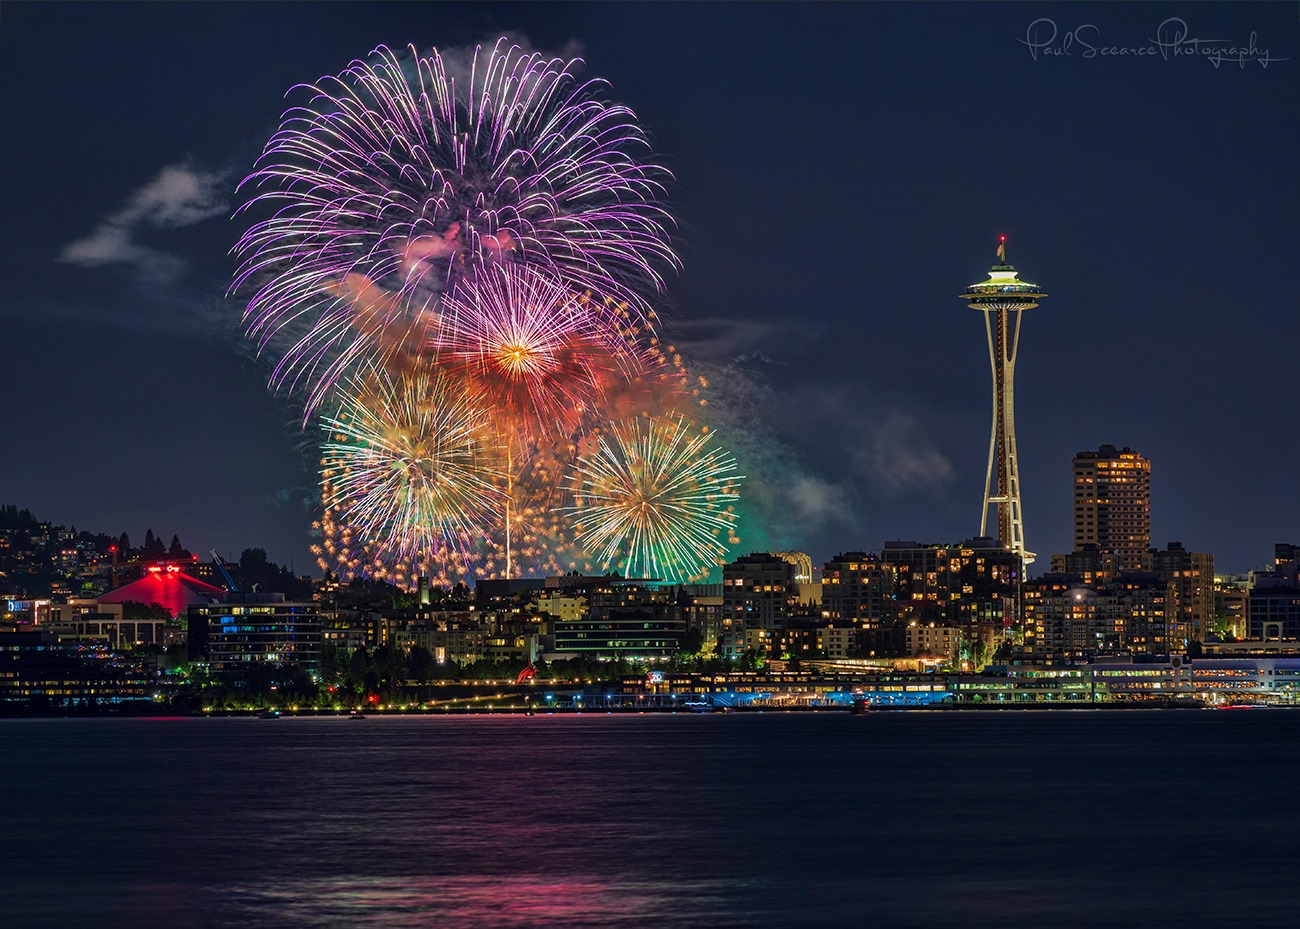 Fourth of July fireworks in Seattle (Photo: Paul Scearce)